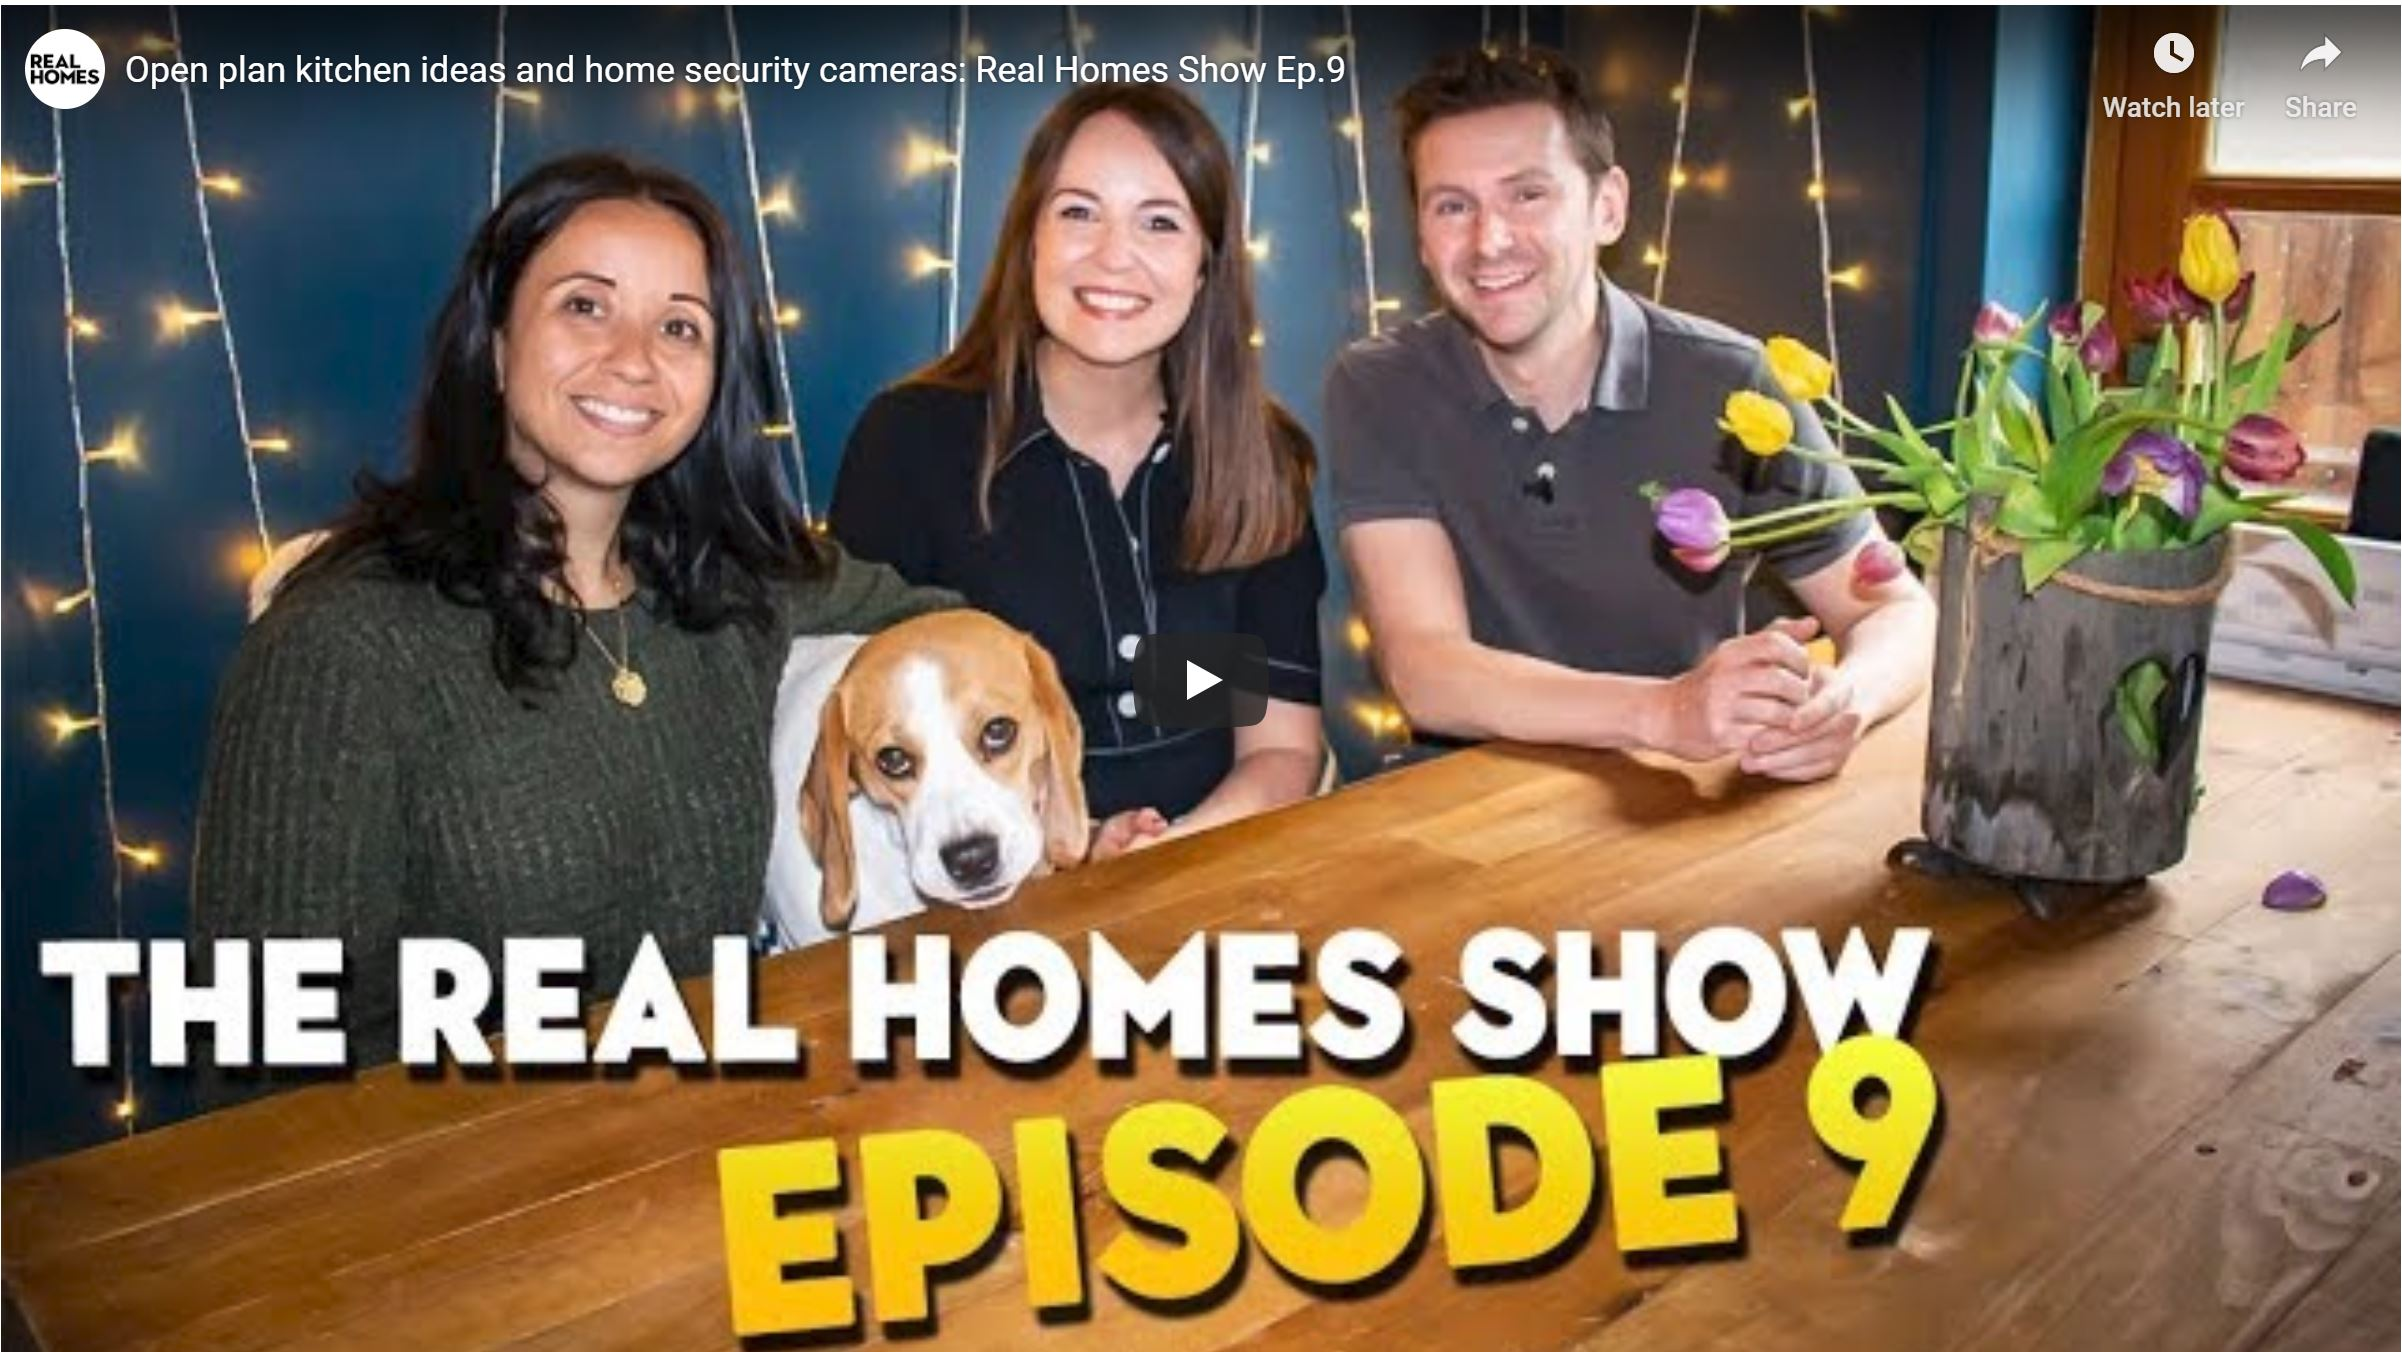 Real Homes Episode 9